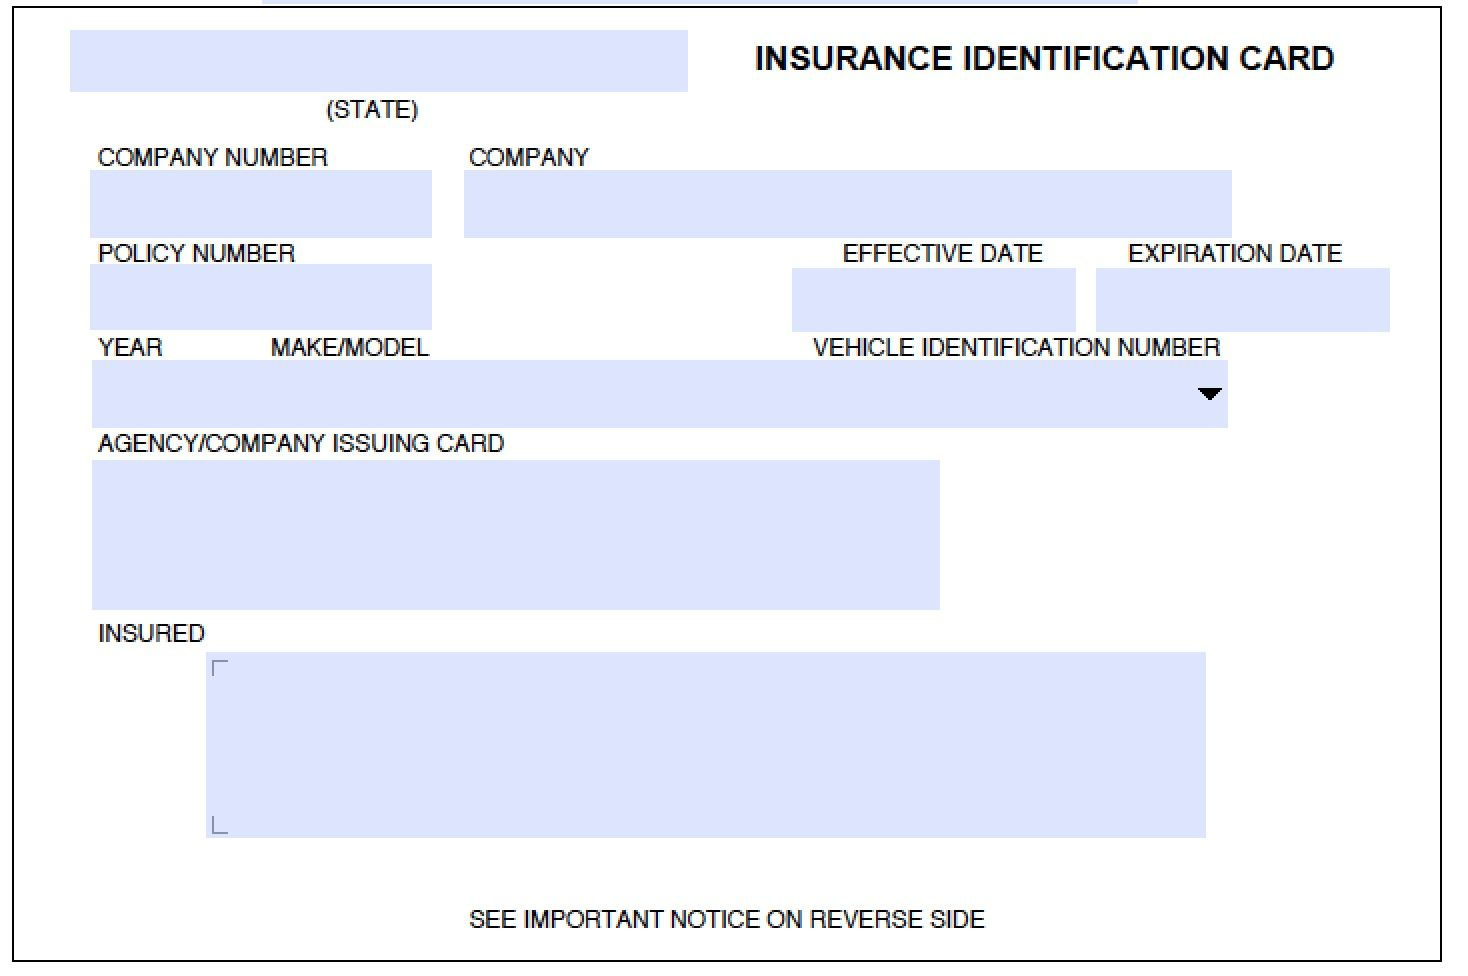 Insurance Card Template Intended For Auto Insurance Id Card Template